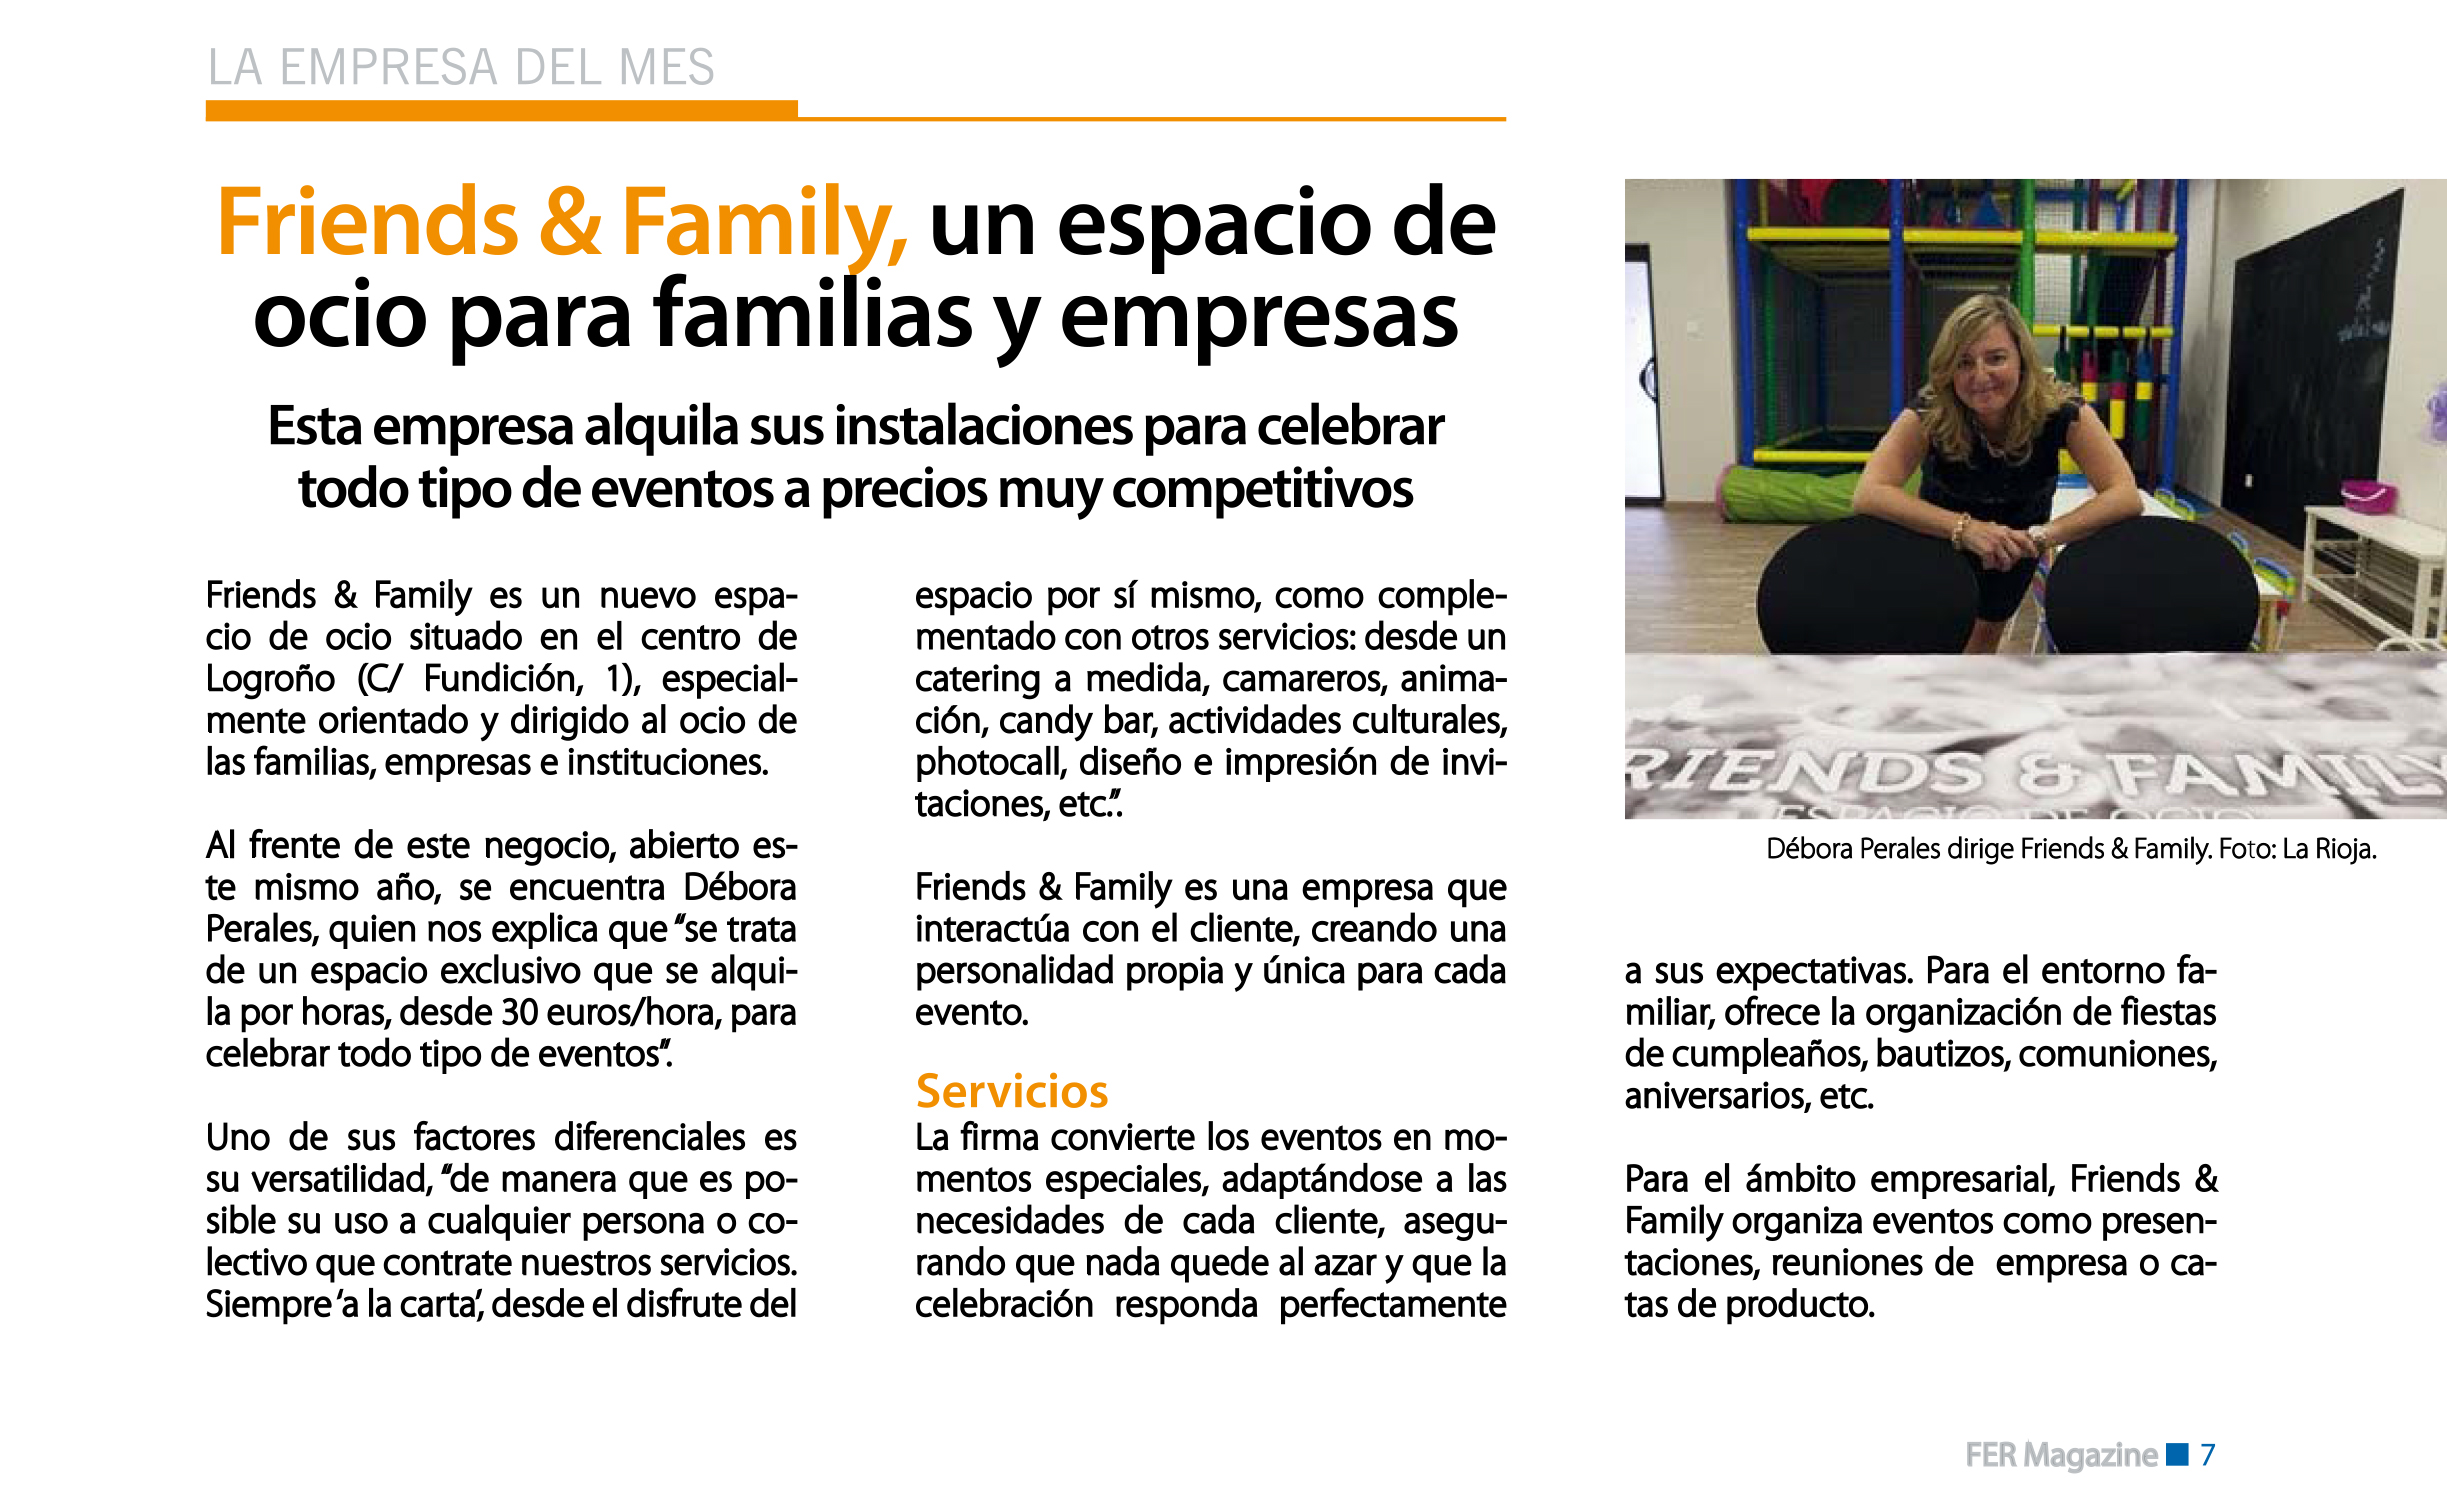 FRIENDS & FAMILY EMPRESA DEL MES